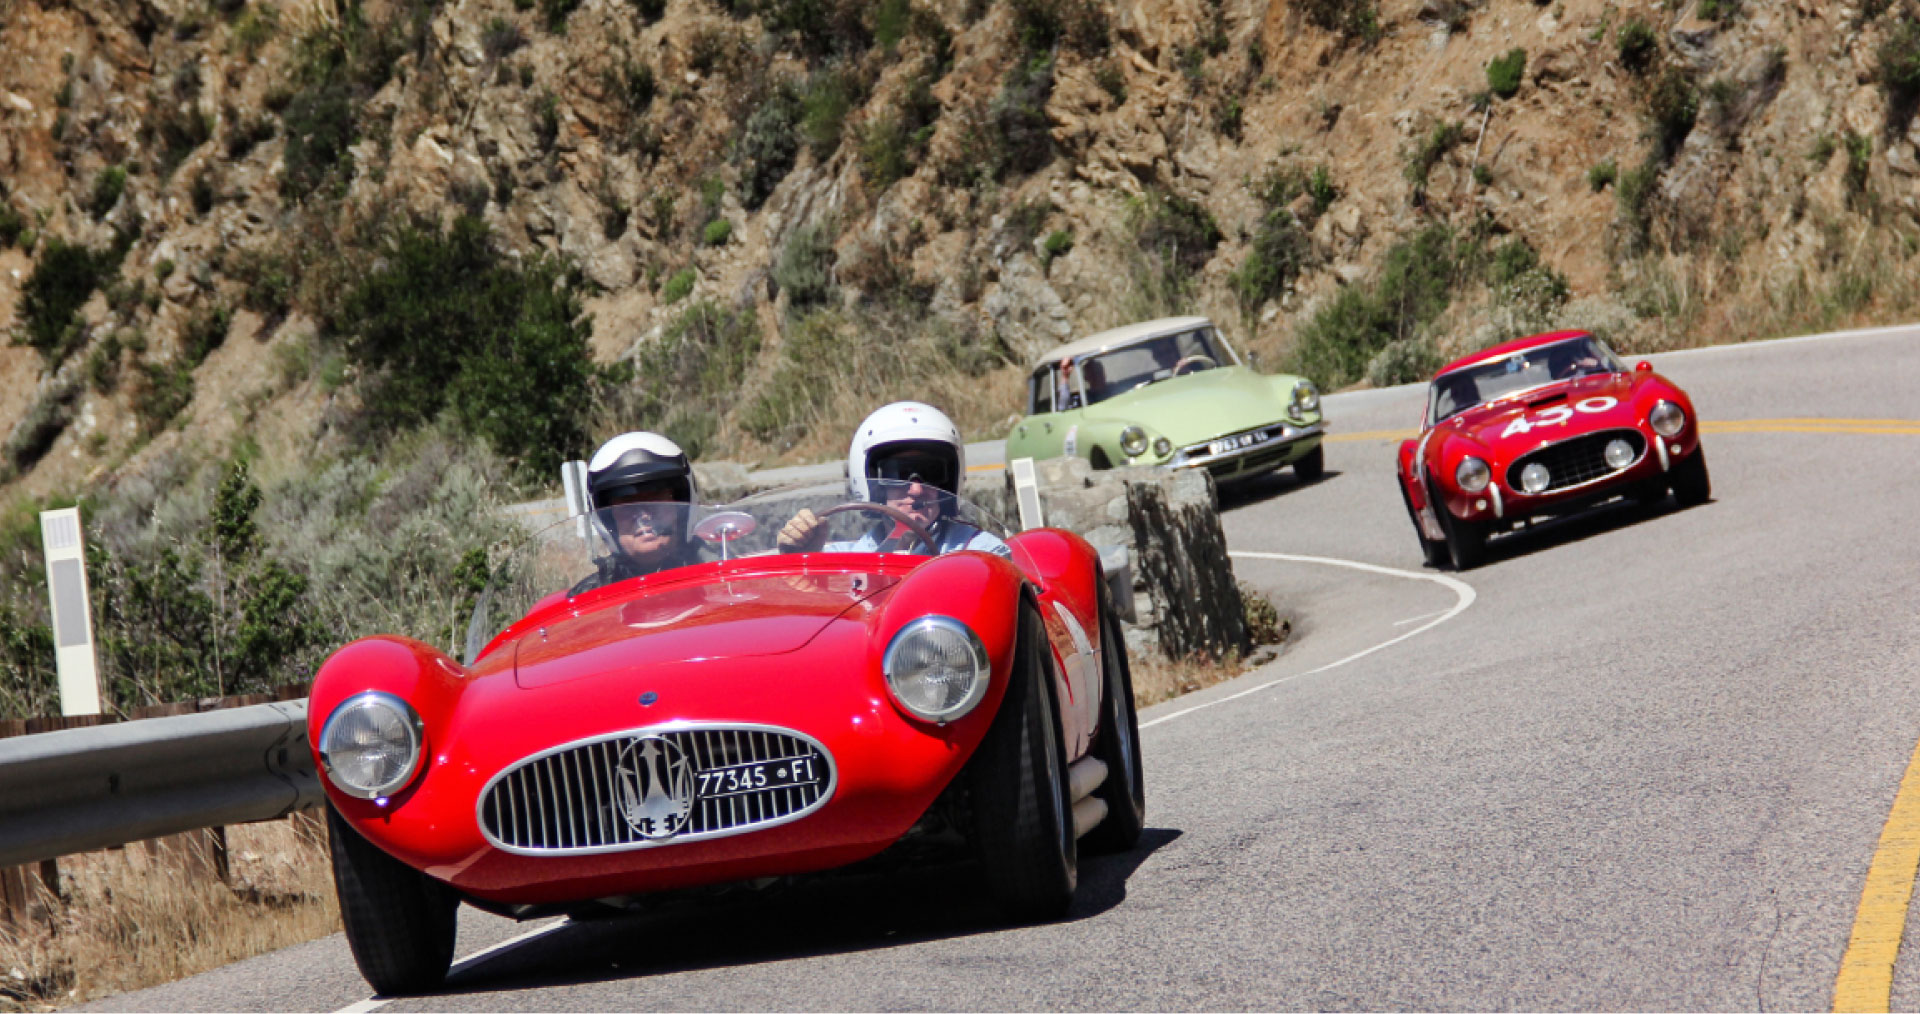 Behind the wheel of the California Mille